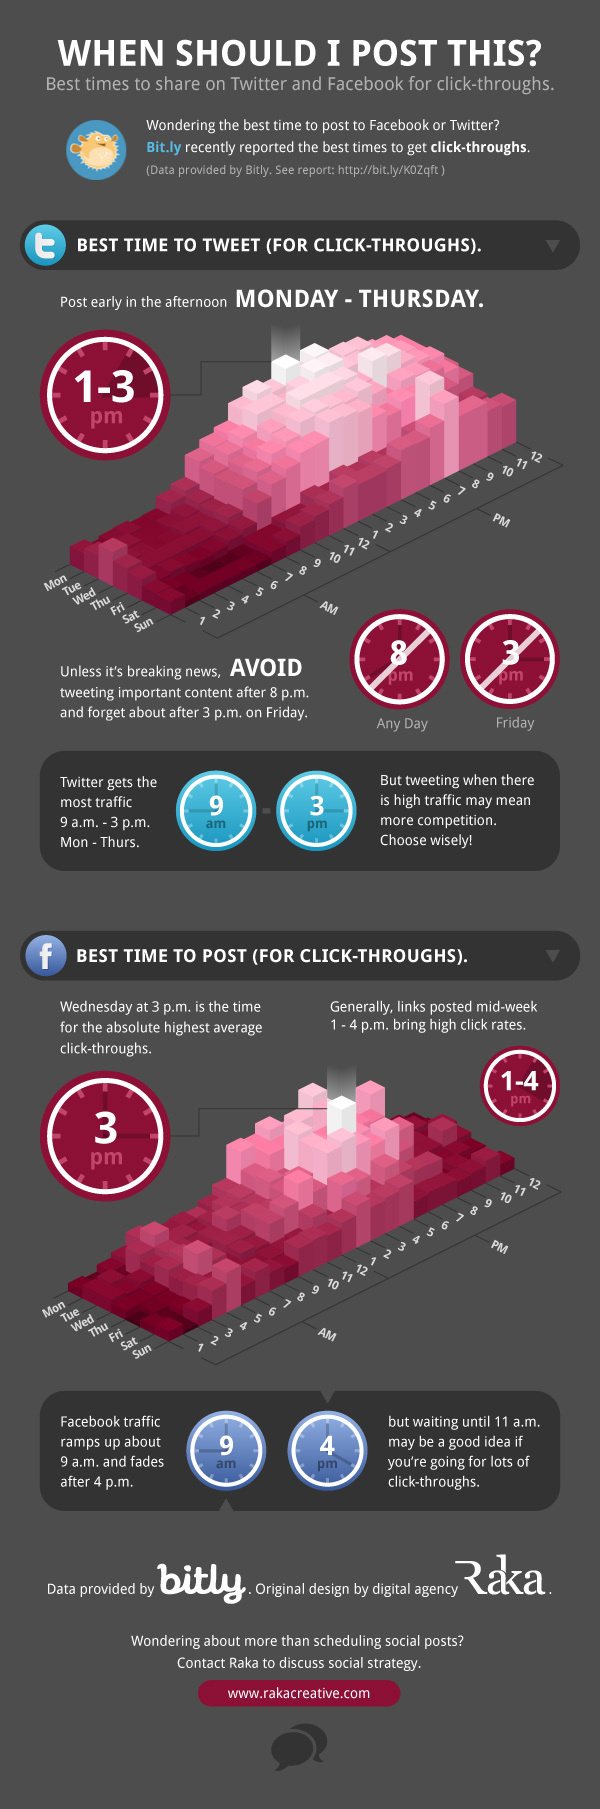 Best Time to Post to Facebook or Twitter #facebook #info #twitter #graphic